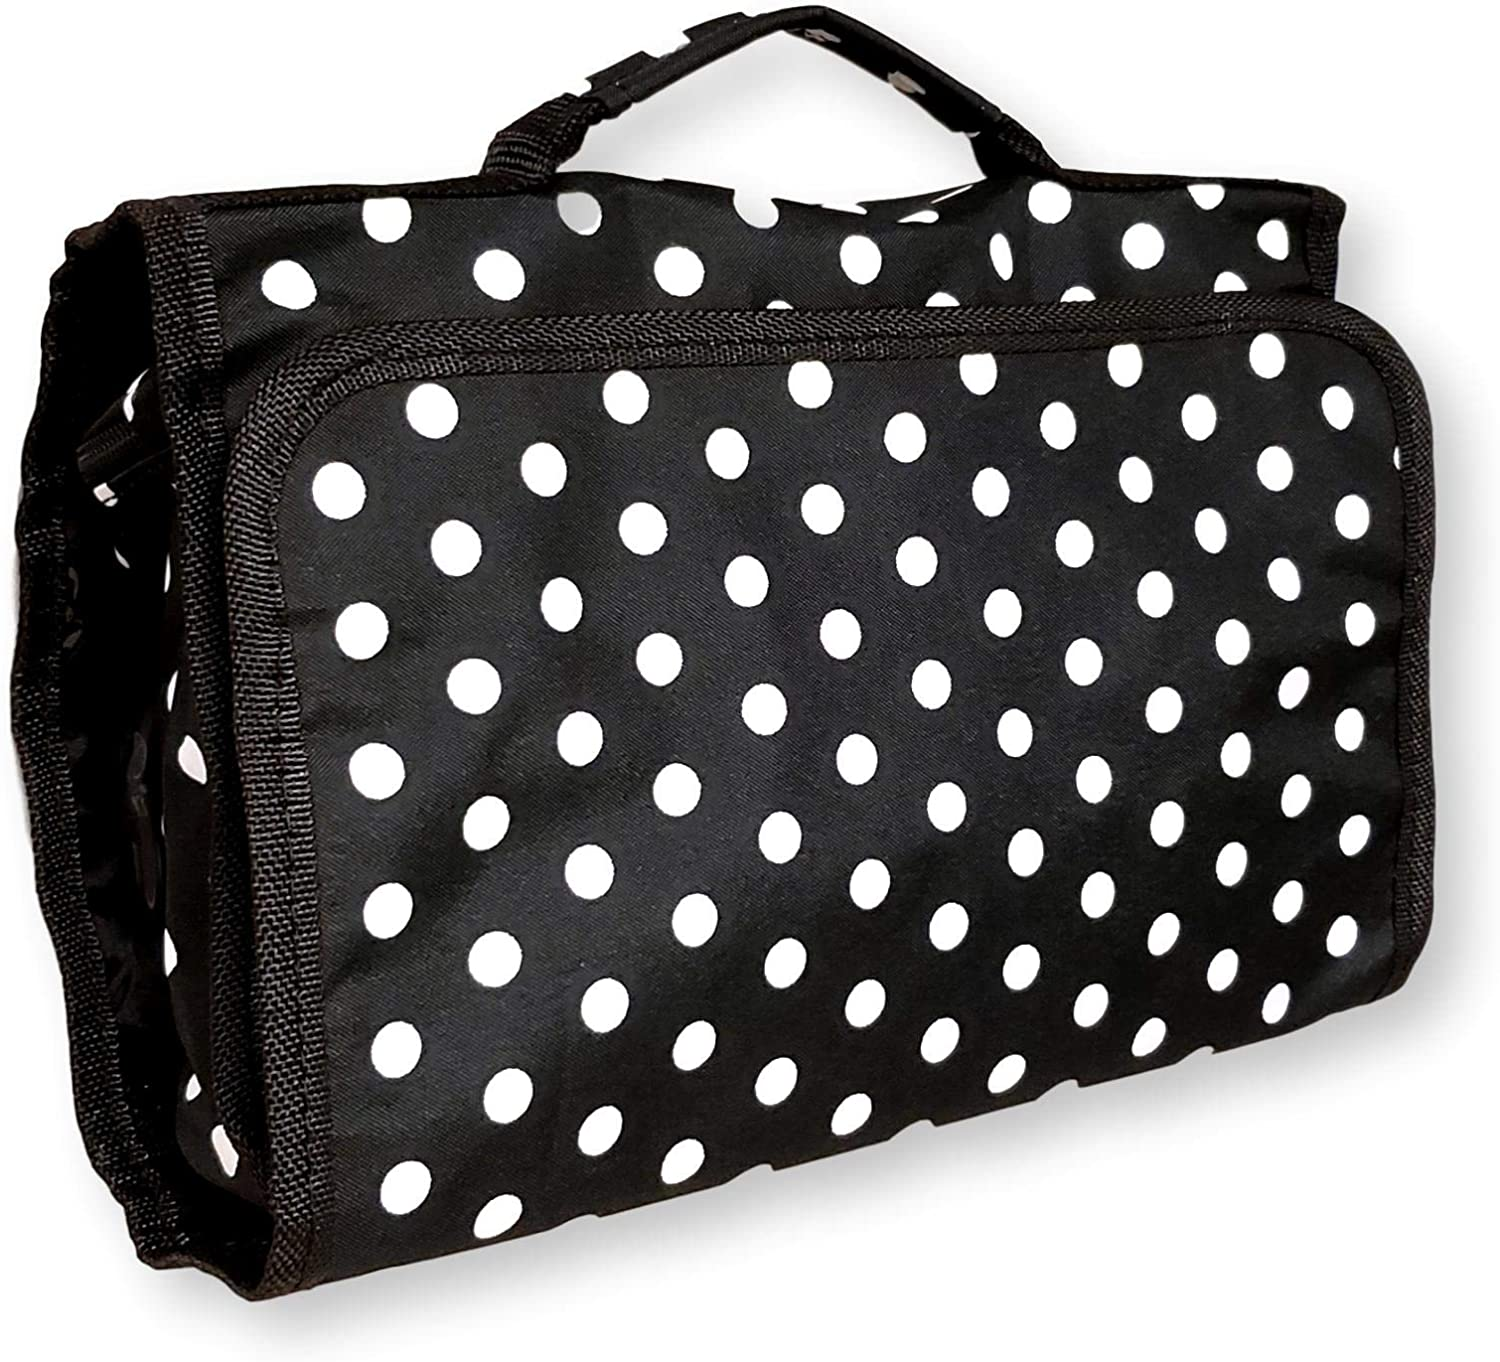 Hanging Toiletry Cosmetic Organizer Bag Roll up for Storage Travel Custom Embroidery Available (Black White Dots)